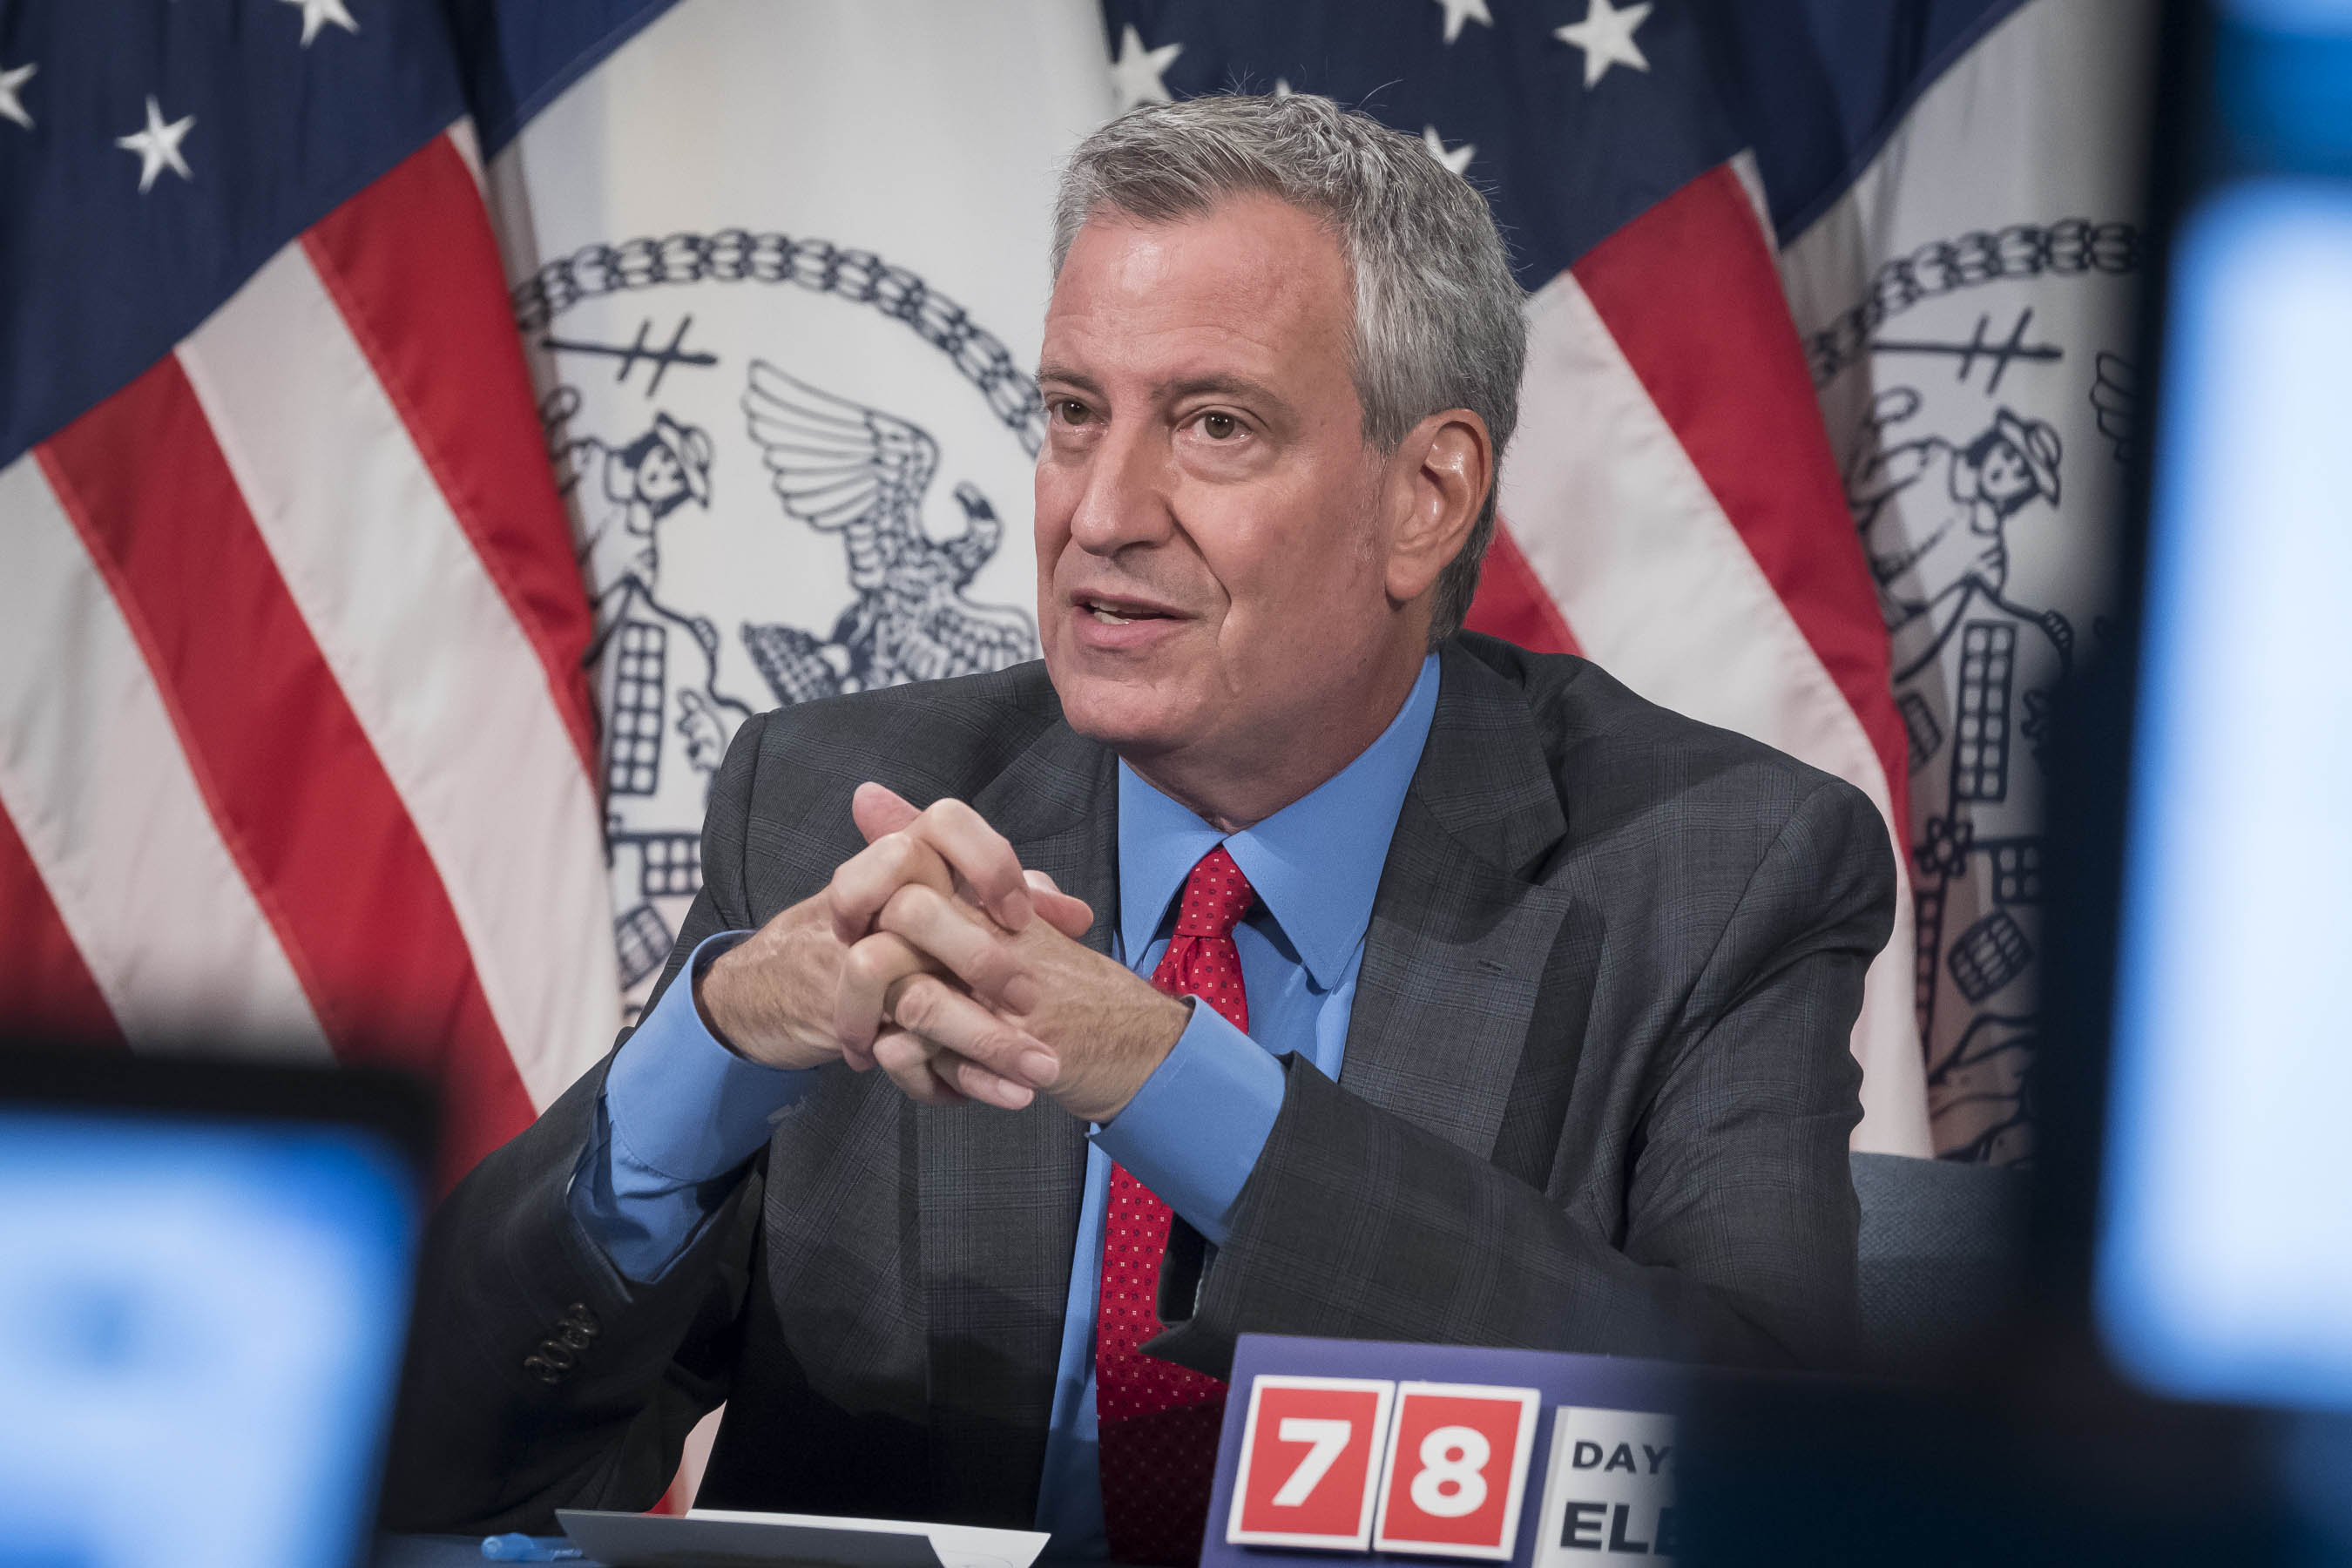 Filthy Parks likely to Only Get Worse, According to De Blasio